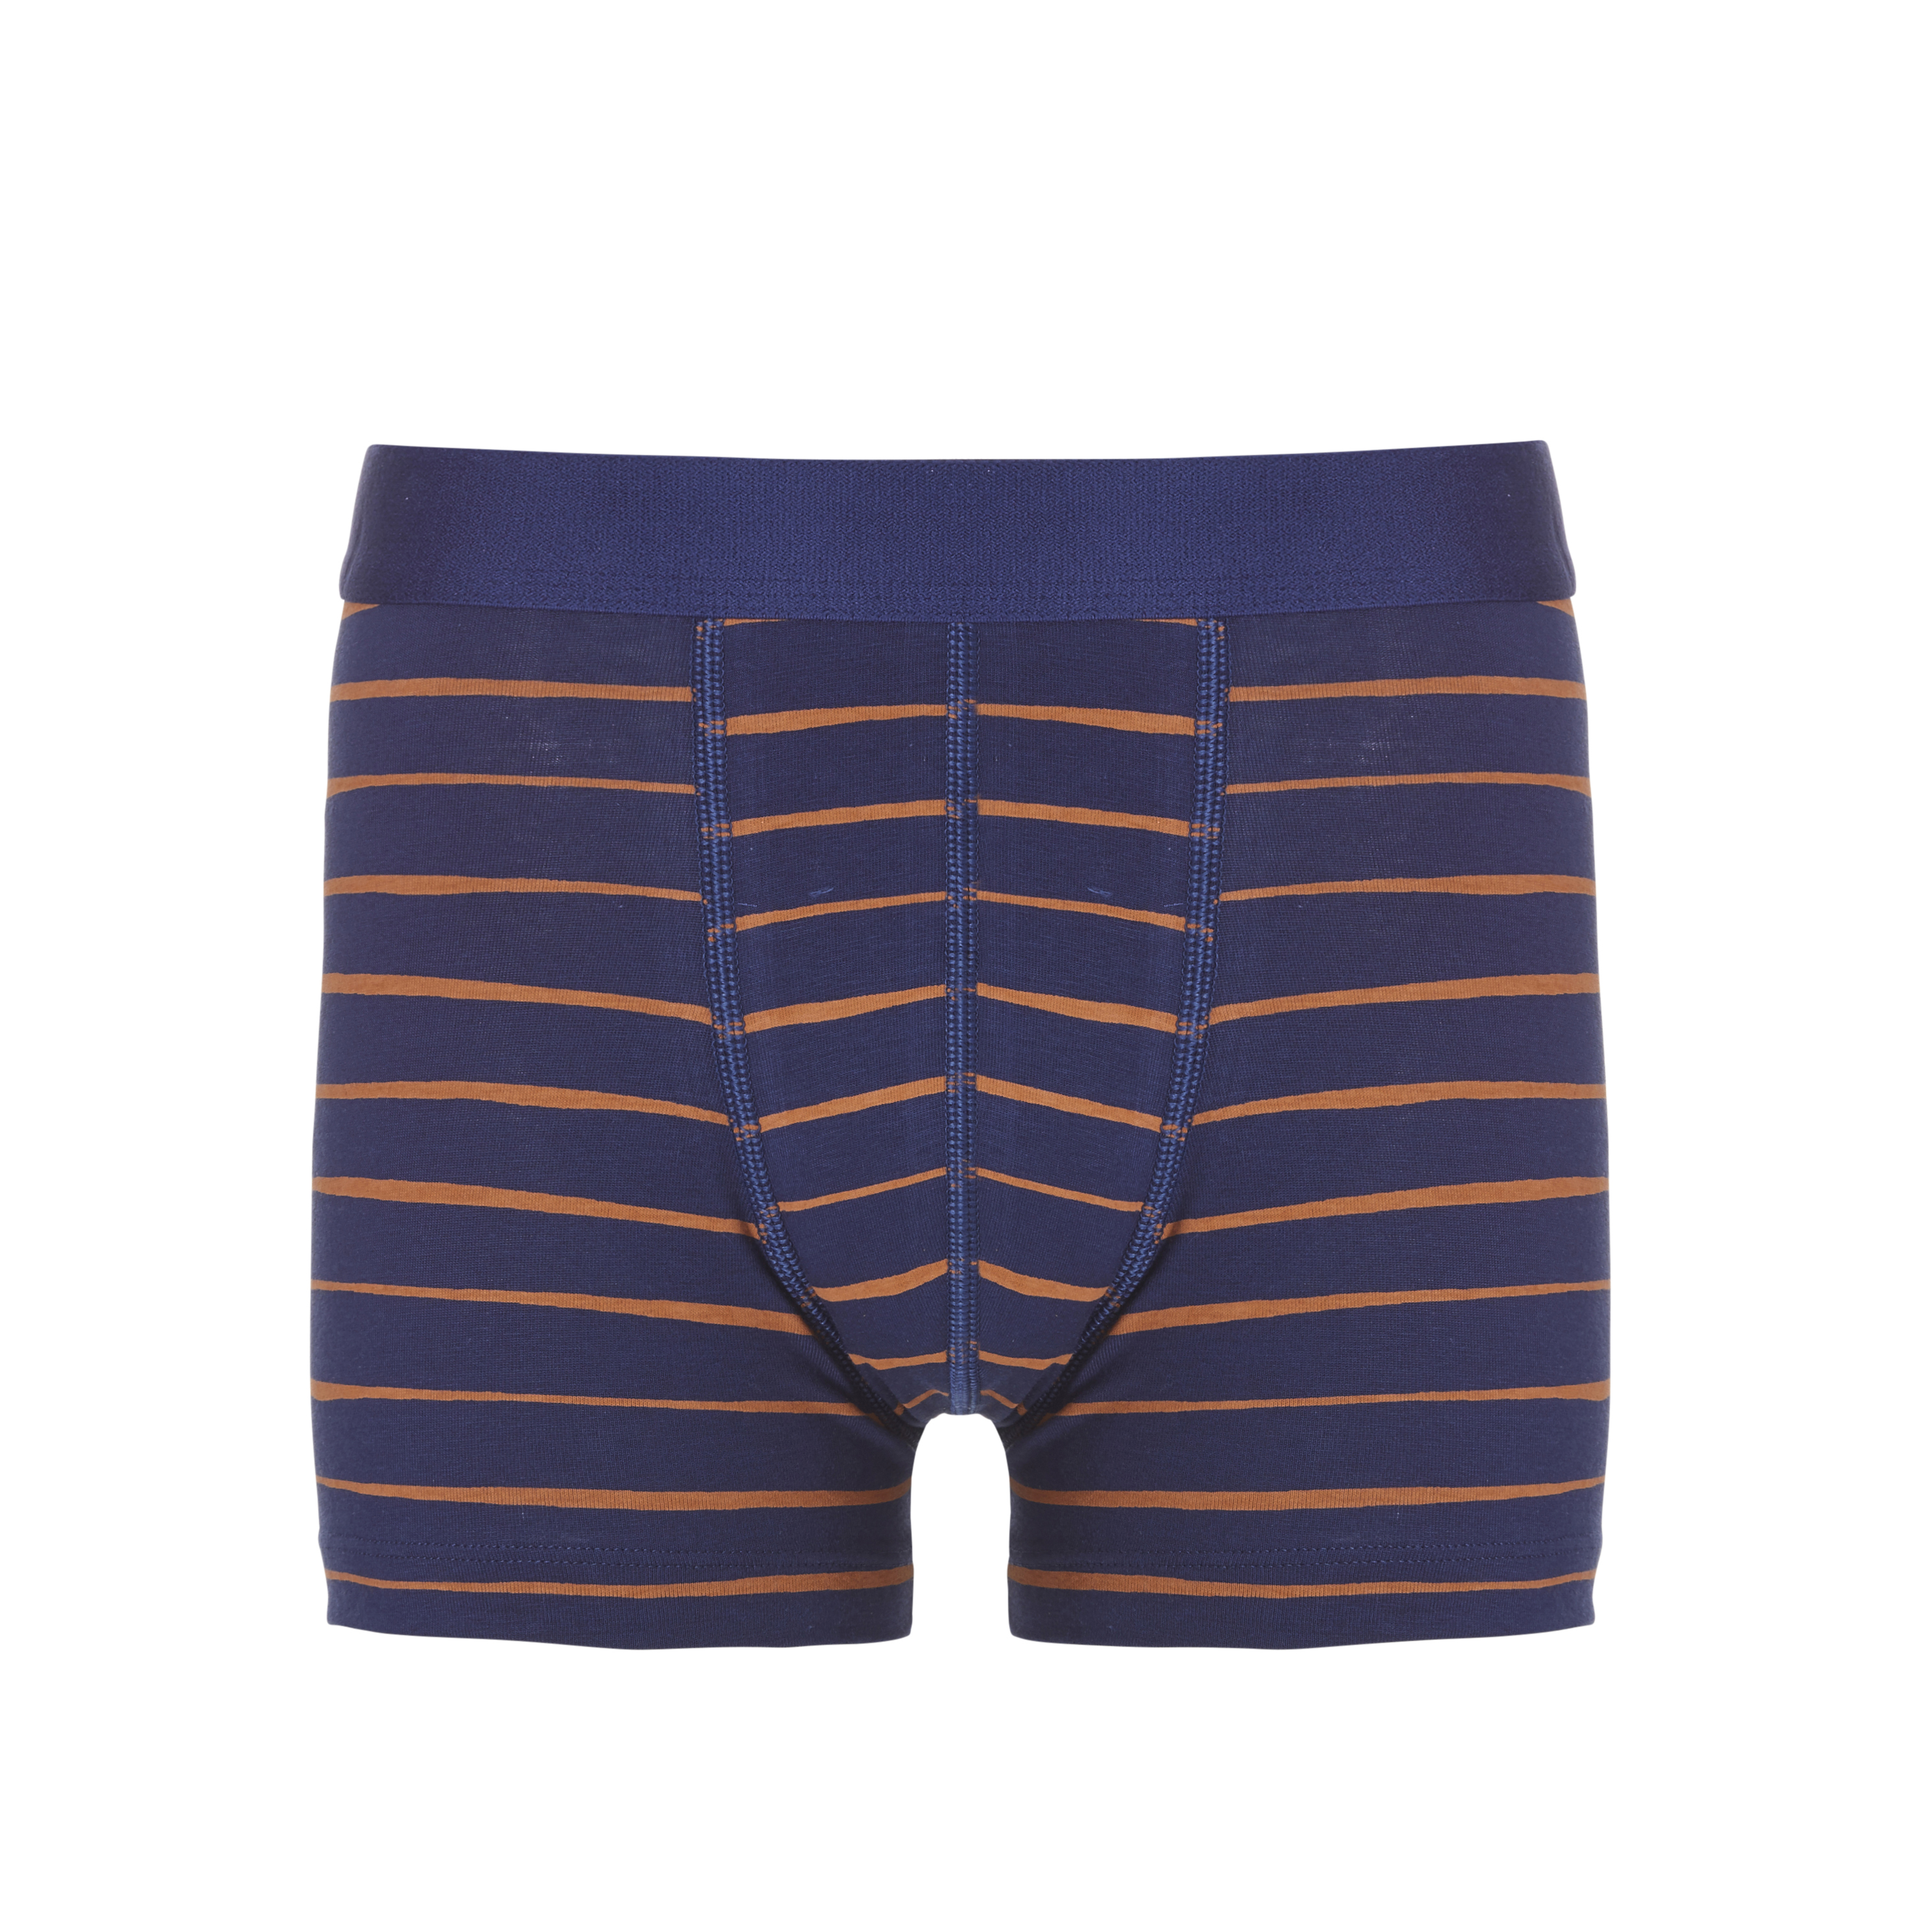 Ten Cate Boys Shorts 13-18Y Earth Layers Deep Blue